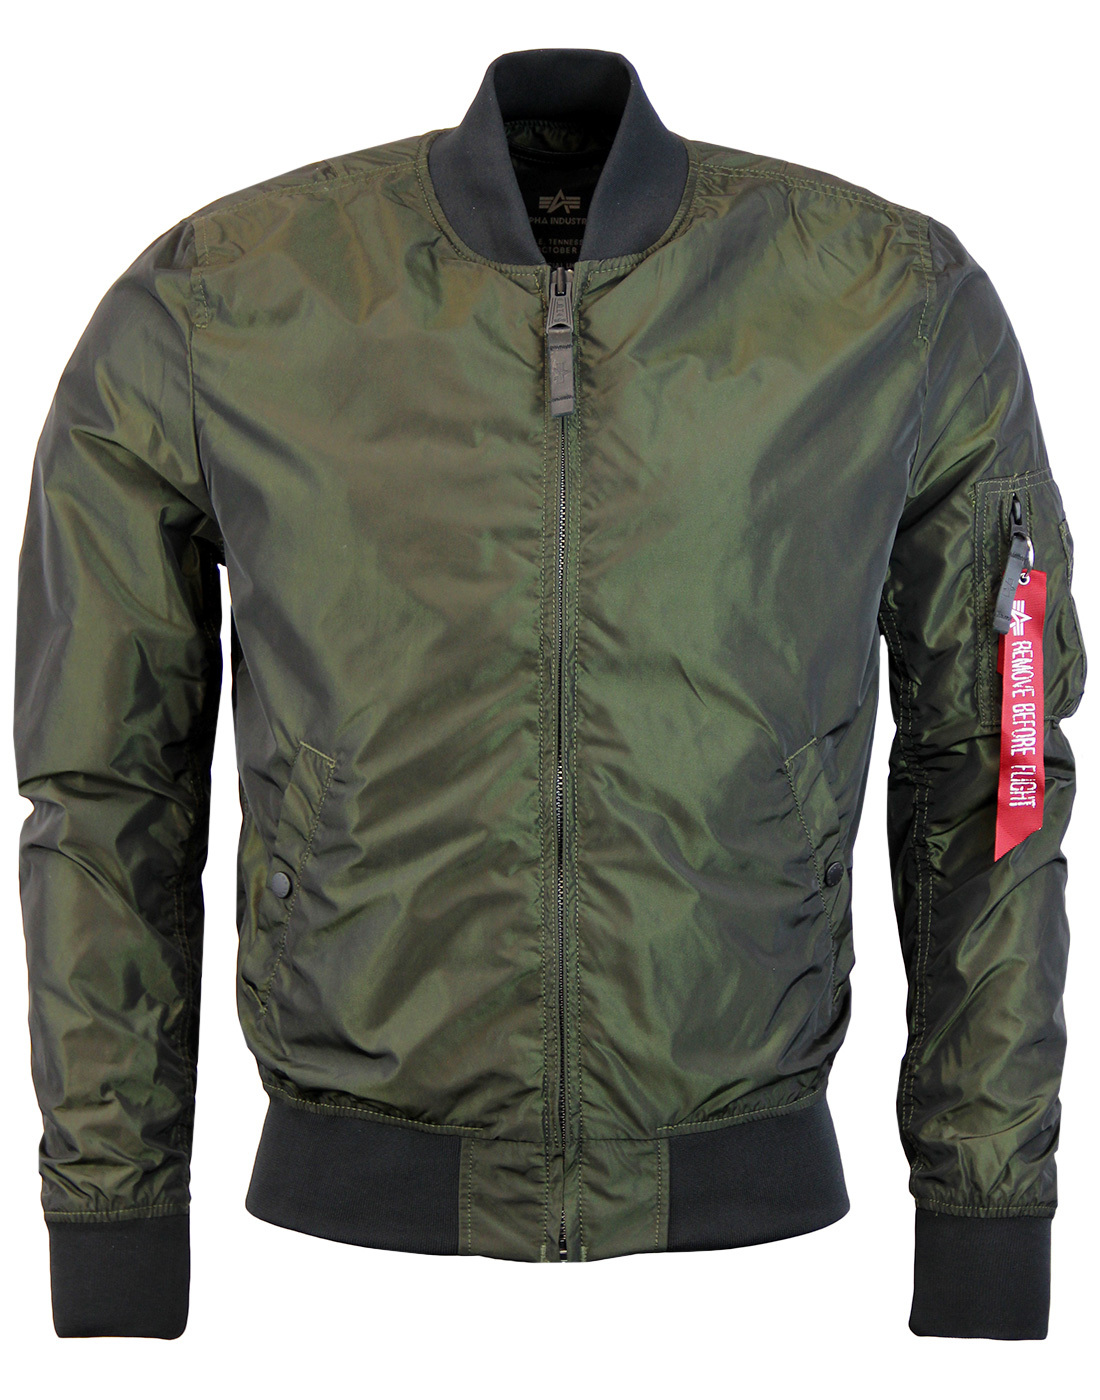 MA1 LW Iriduim ALPHA INDUSTRIES Mod Bomber Jacket